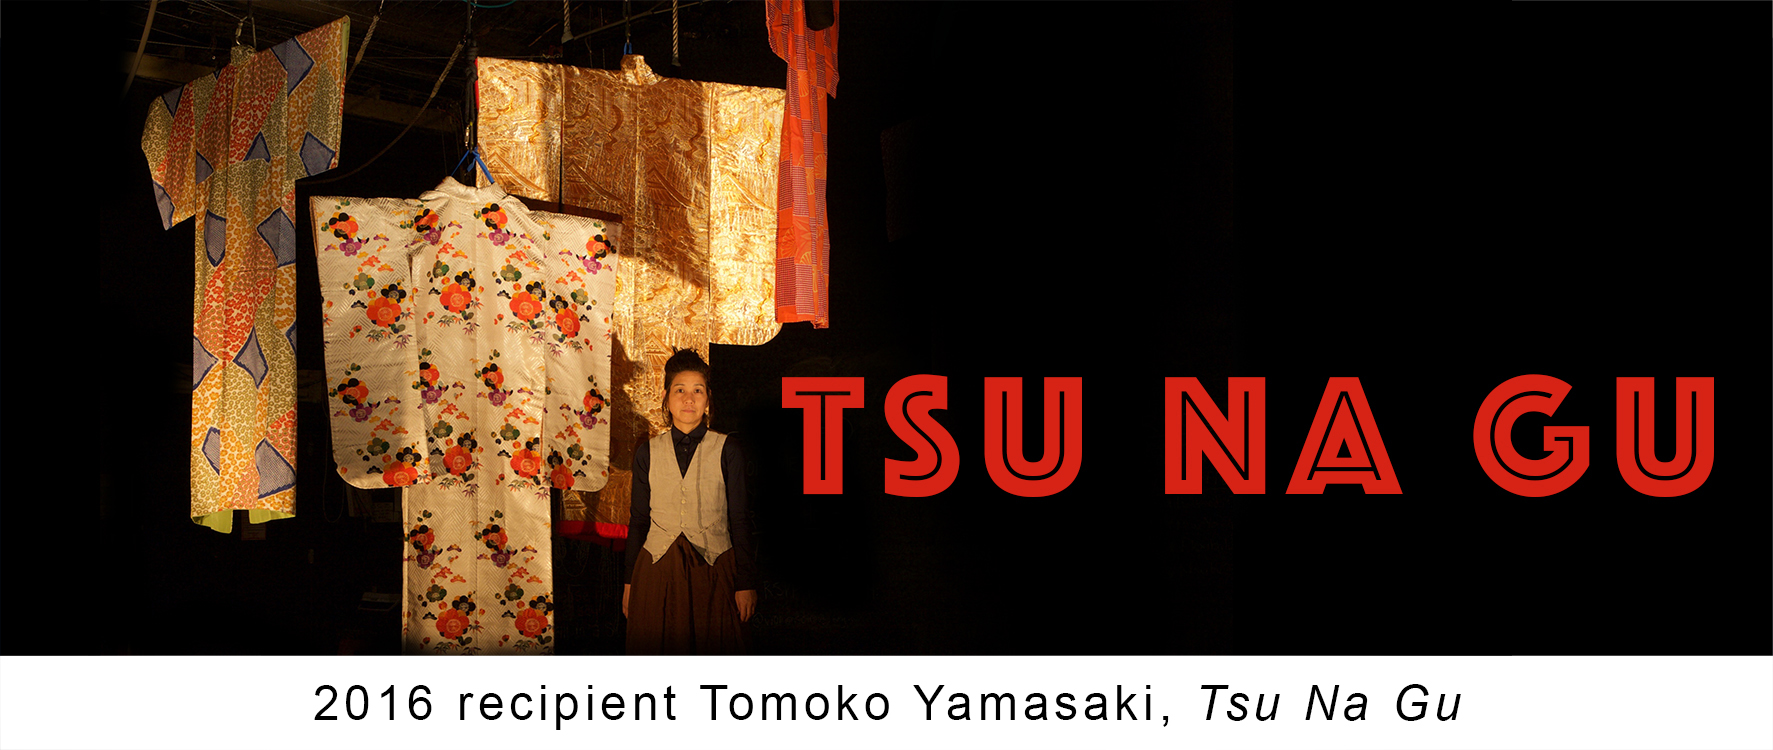 Tsu Na Gu promotional poster, featuring woman standing next by various fabrics.